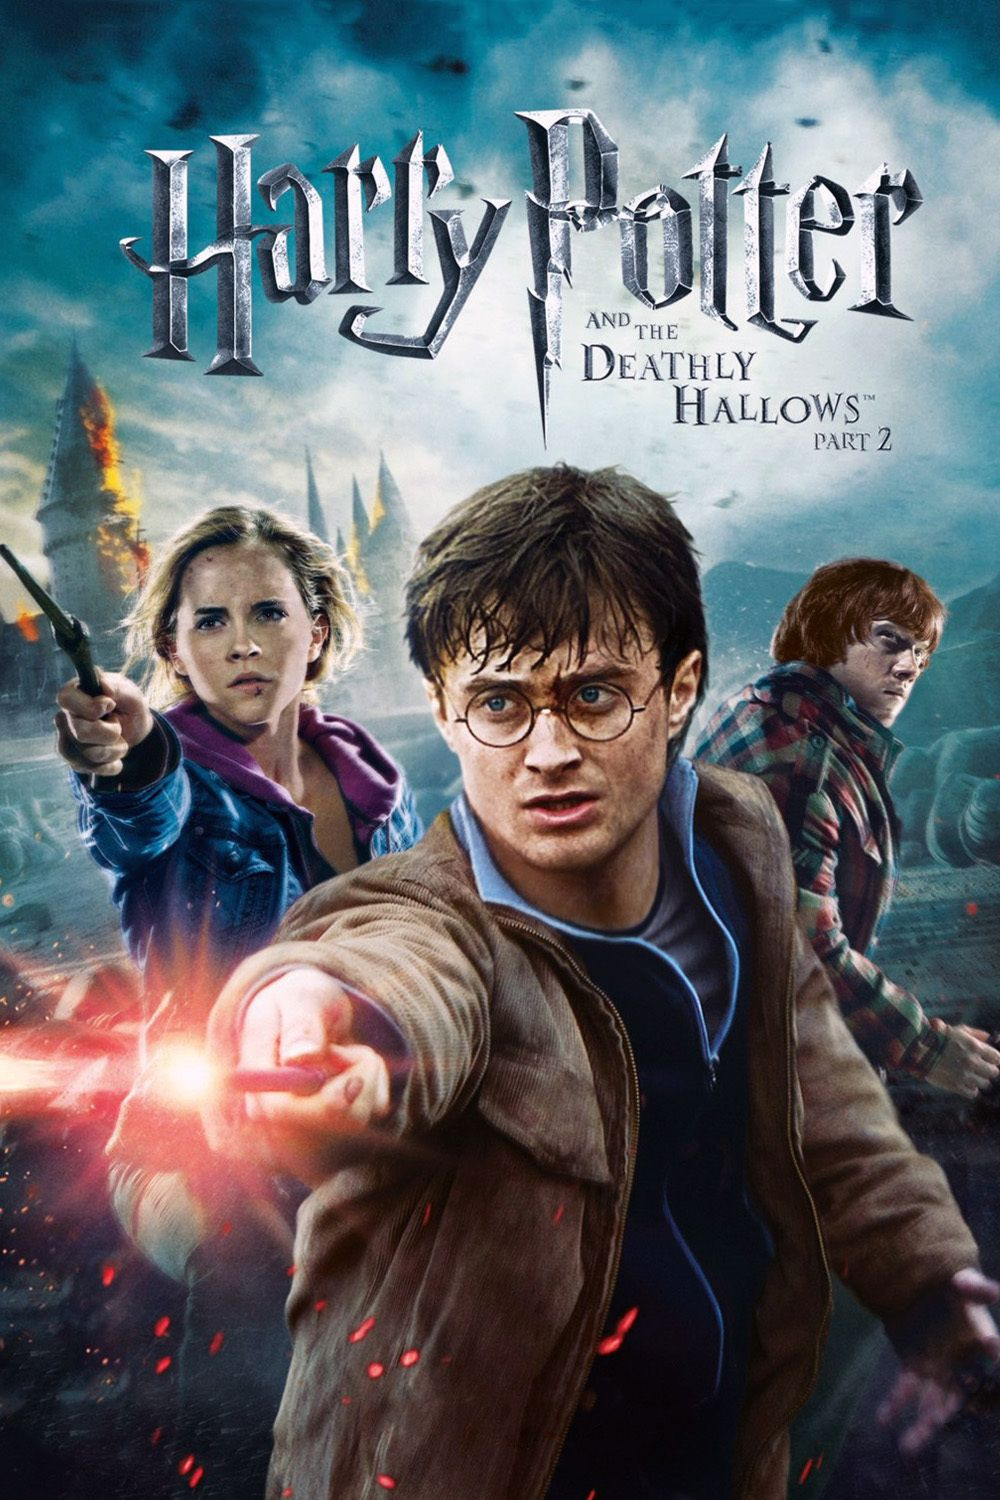 Watch Full Harry Potter And The Deathly Hallows Part 2 Online Deathly Hallows Part 2 Harry Potter Deathly Hallows Harry Potter Movies